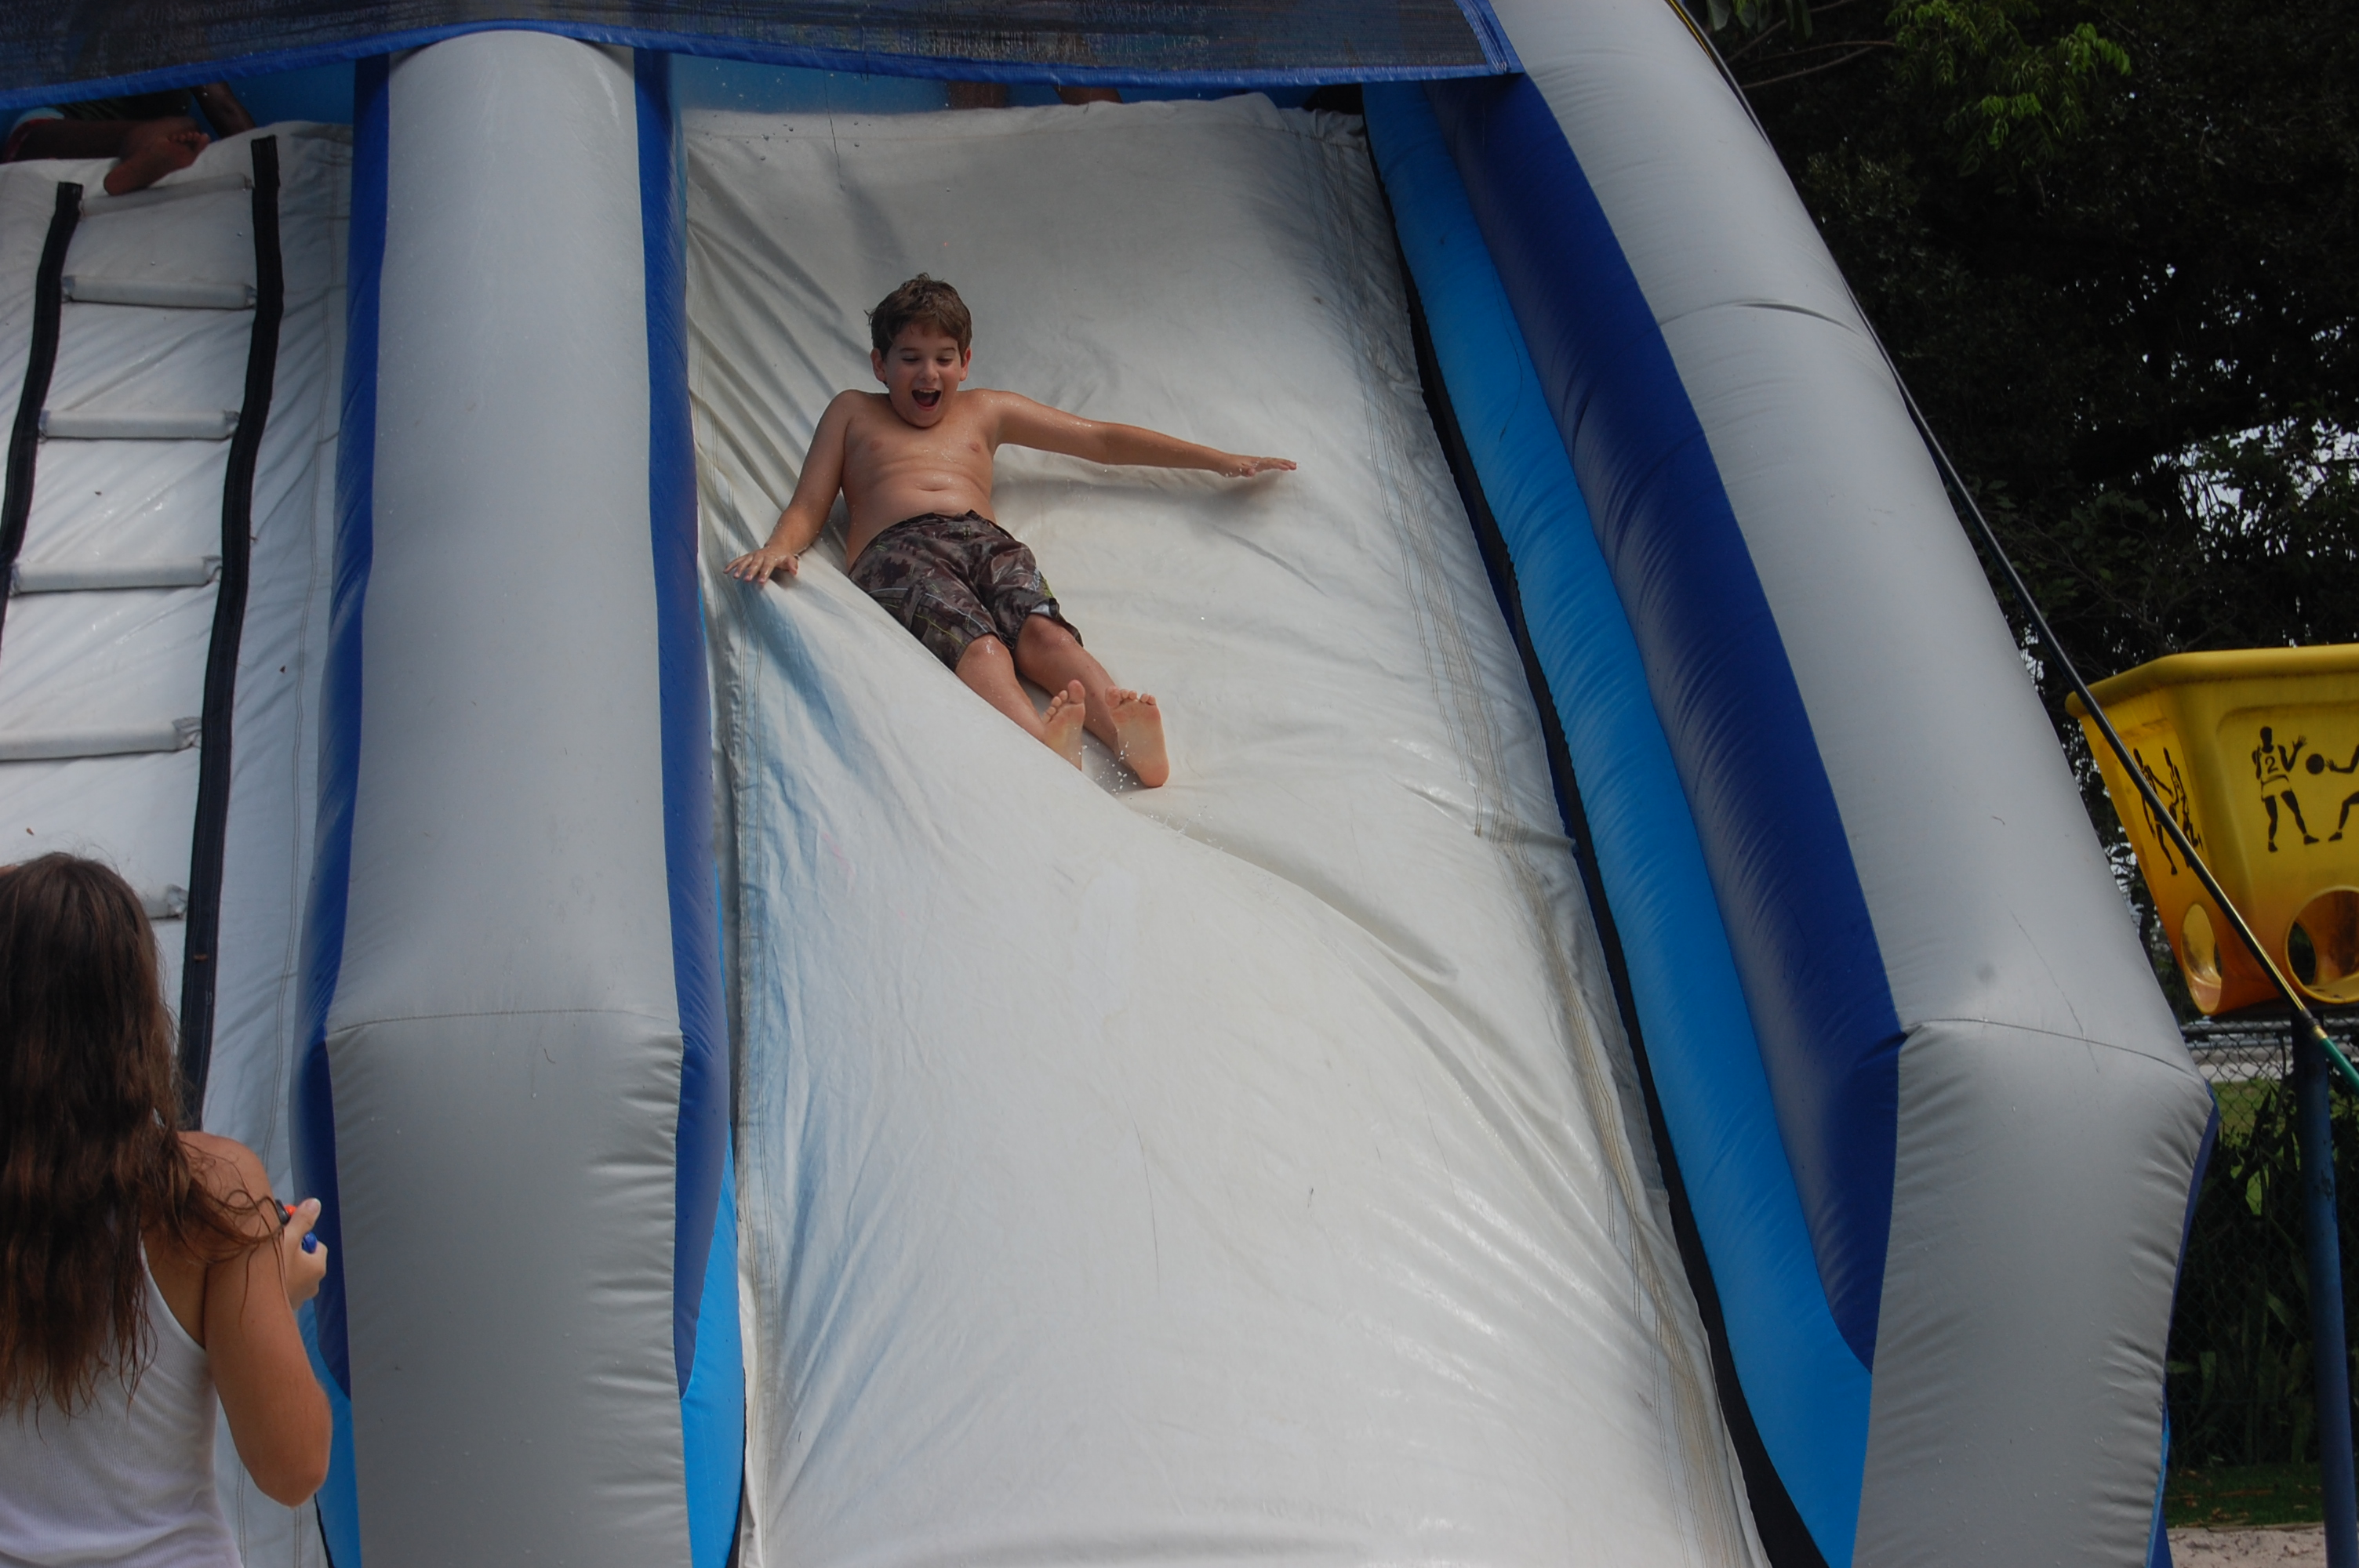 Day Camp Waterslide